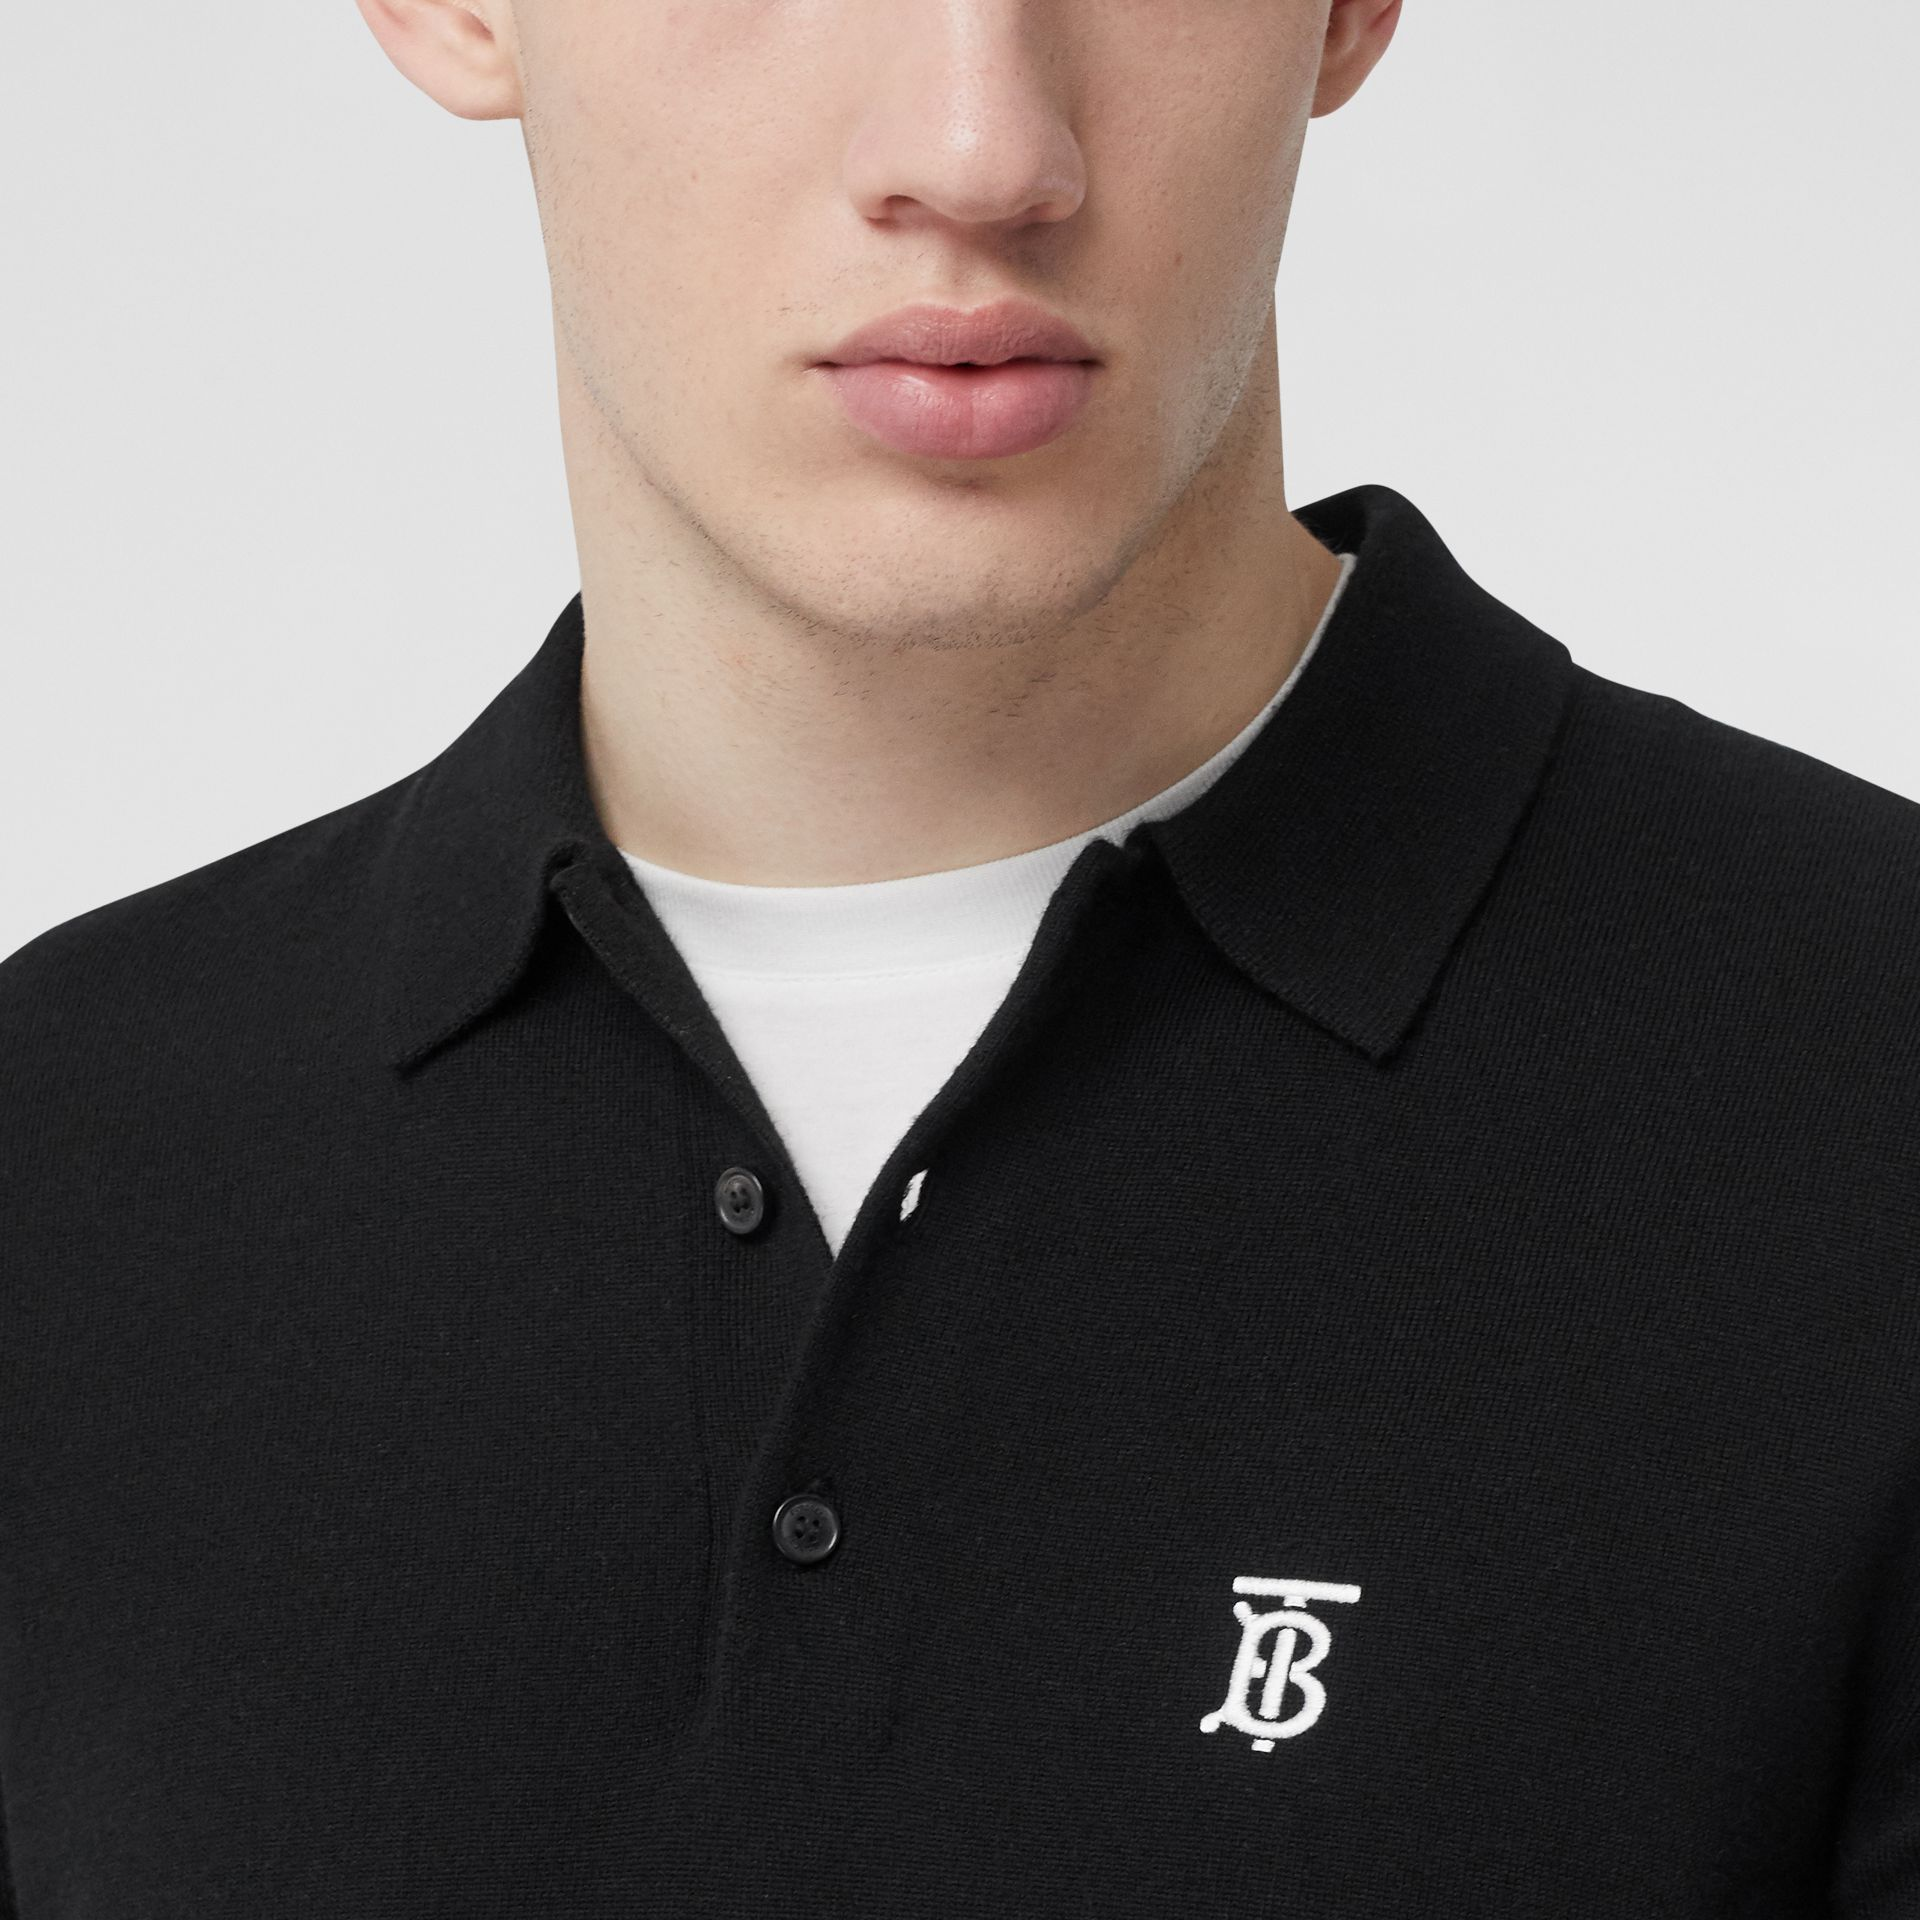 Long-sleeve Monogram Motif Merino Wool Polo Shirt in Black - Men | Burberry - gallery image 1